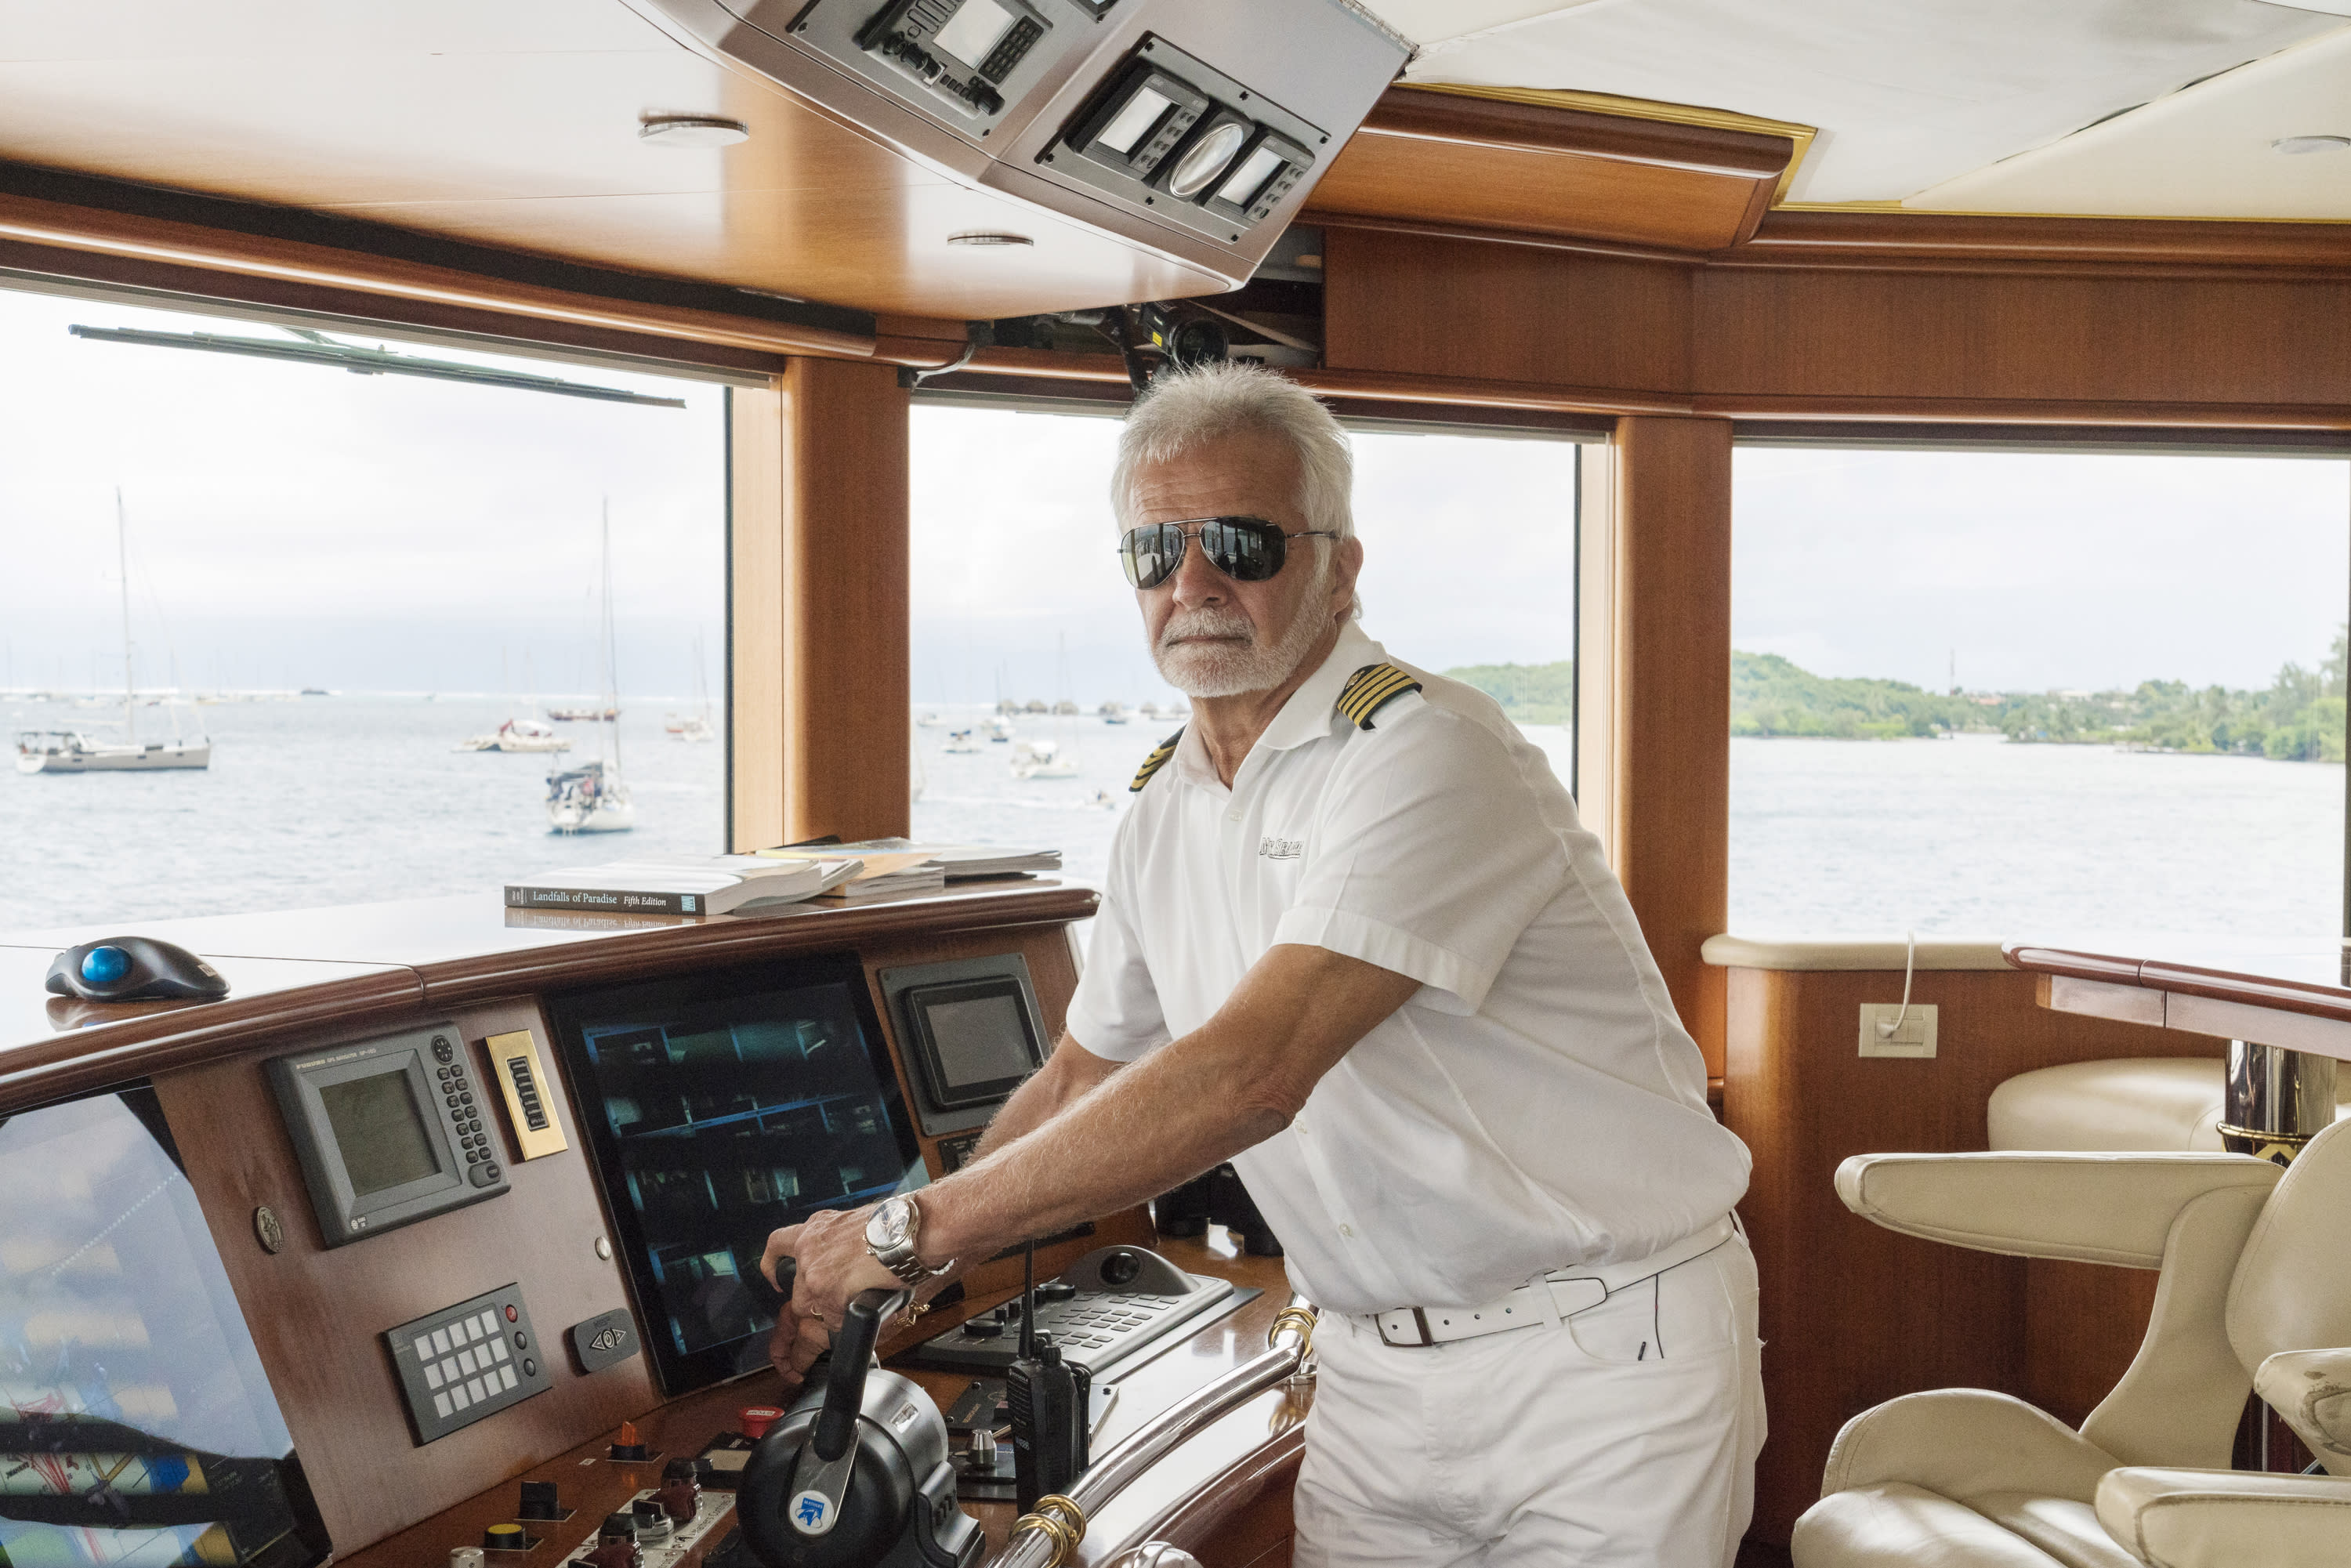 'Below Deck' star Captain Lee Rosbach speaks out about son's fatal overdose: 'I thought he had passed out'